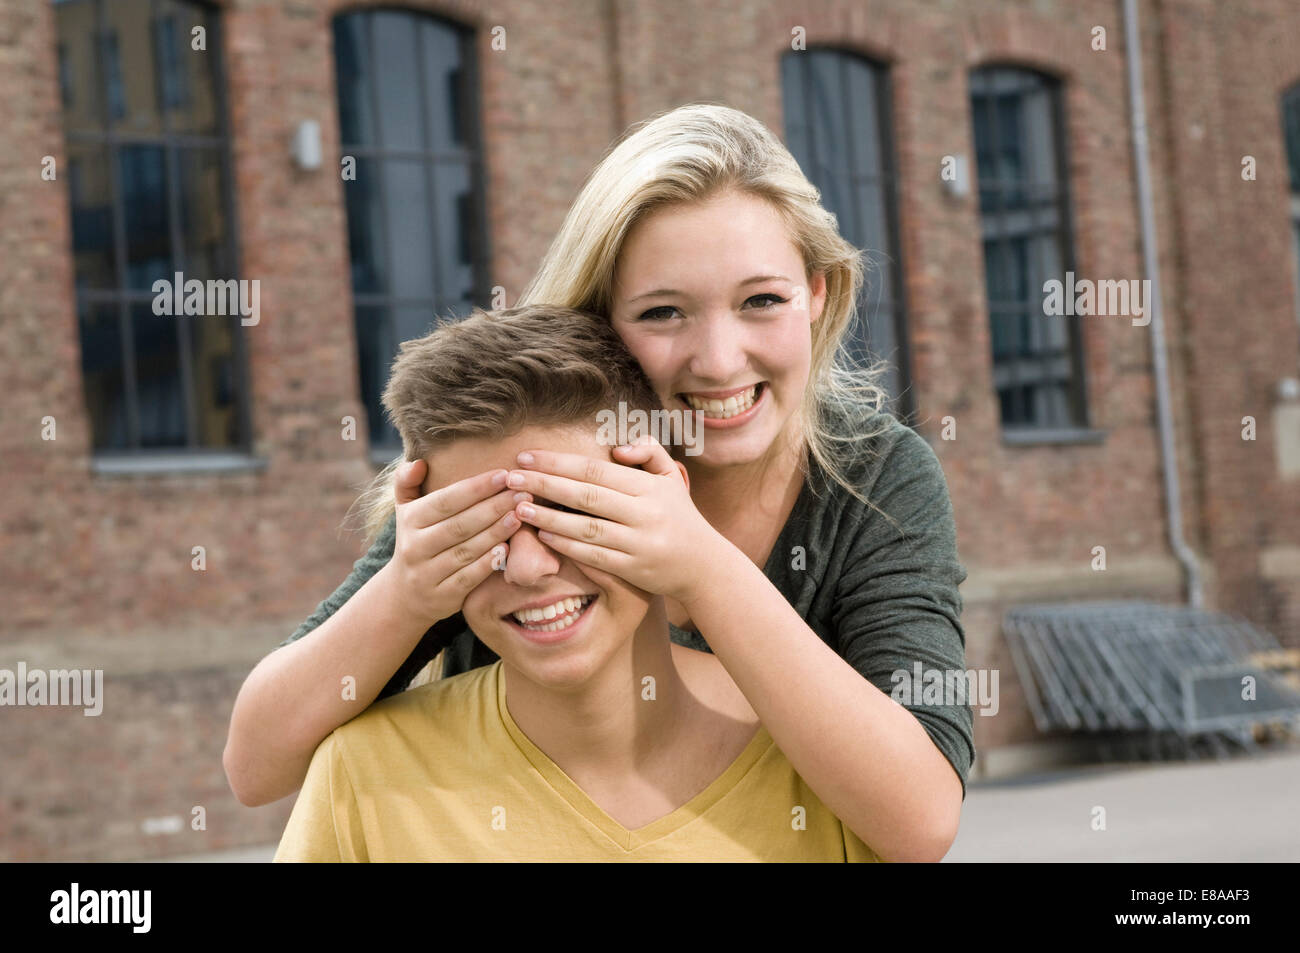 Portrait of teenage girl covering eyes of teenage boy, smiling - Stock Image